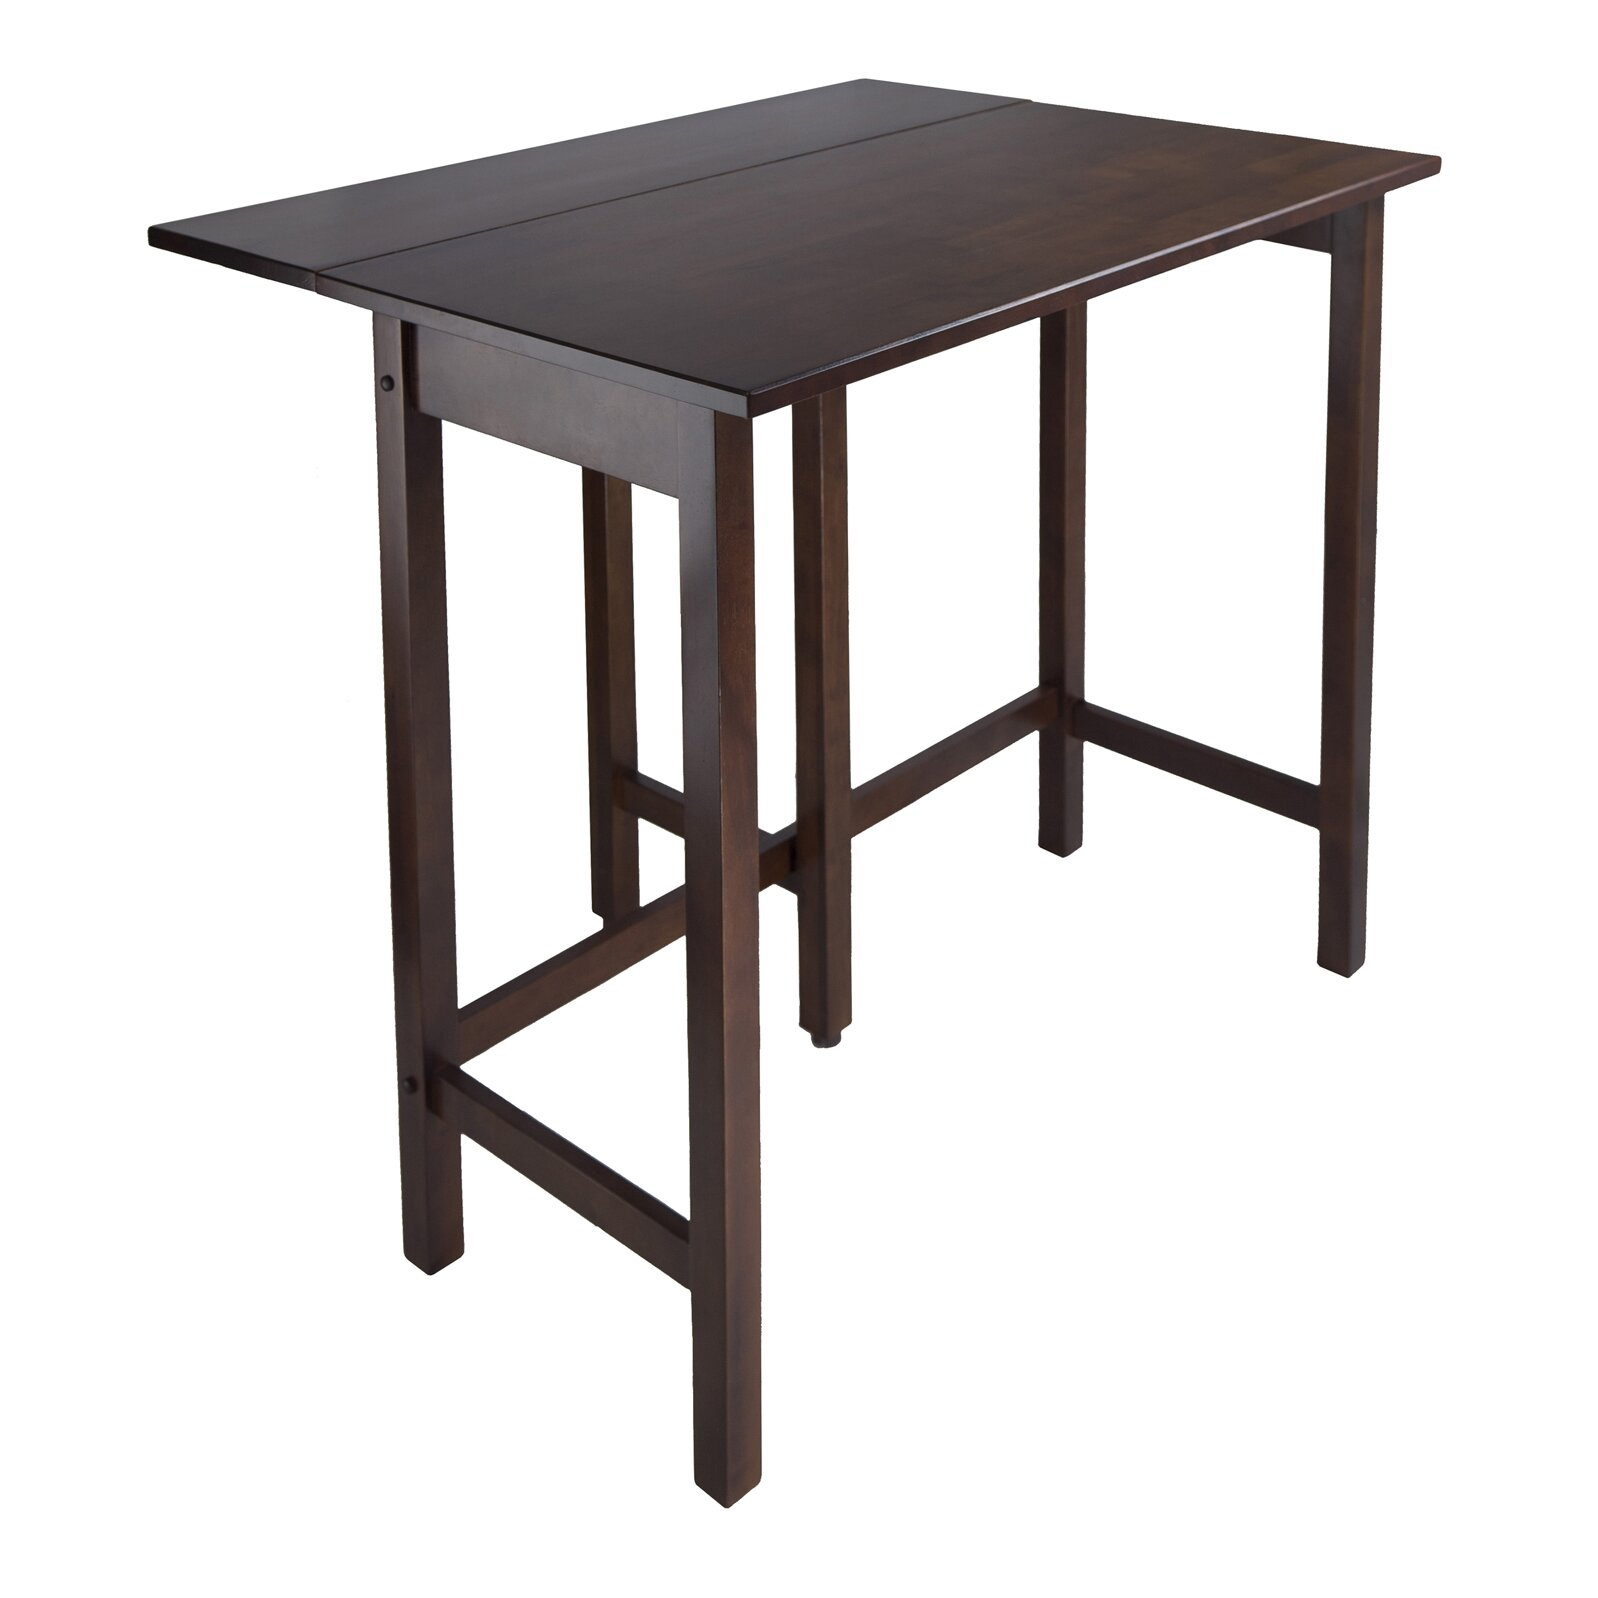 Winsome lynnwood counter height extendable dining table for Counter height dining table